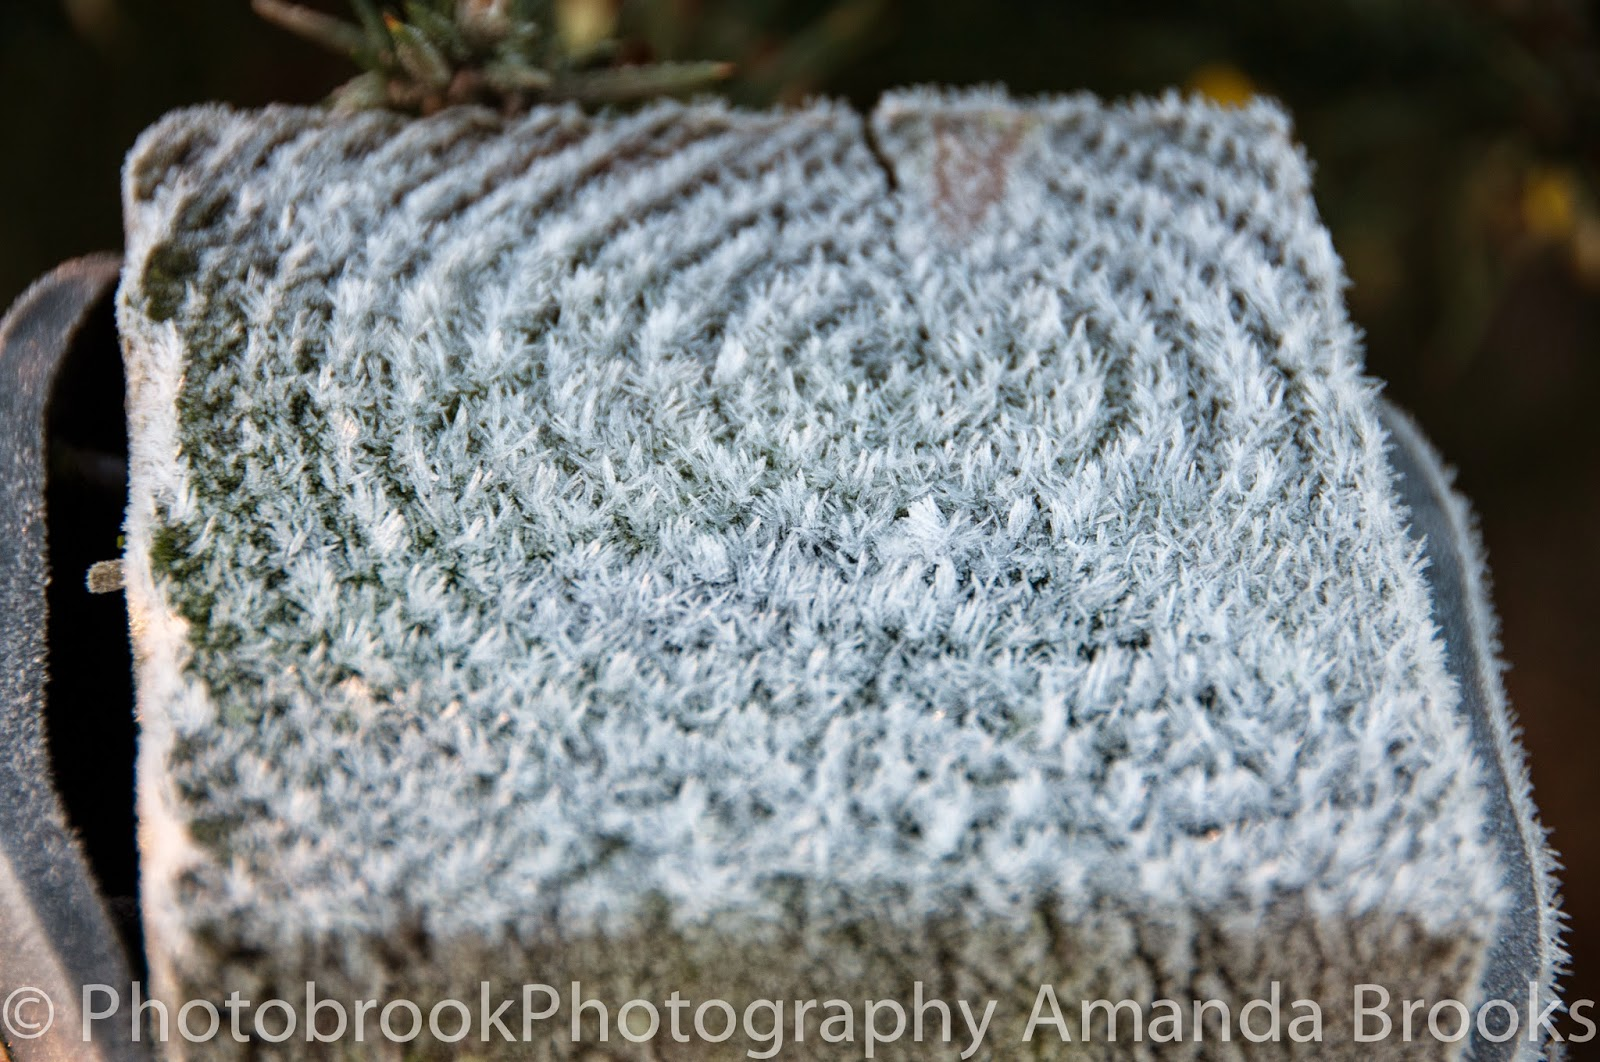 beautiful patterns made in a heavy frost in Cornwall